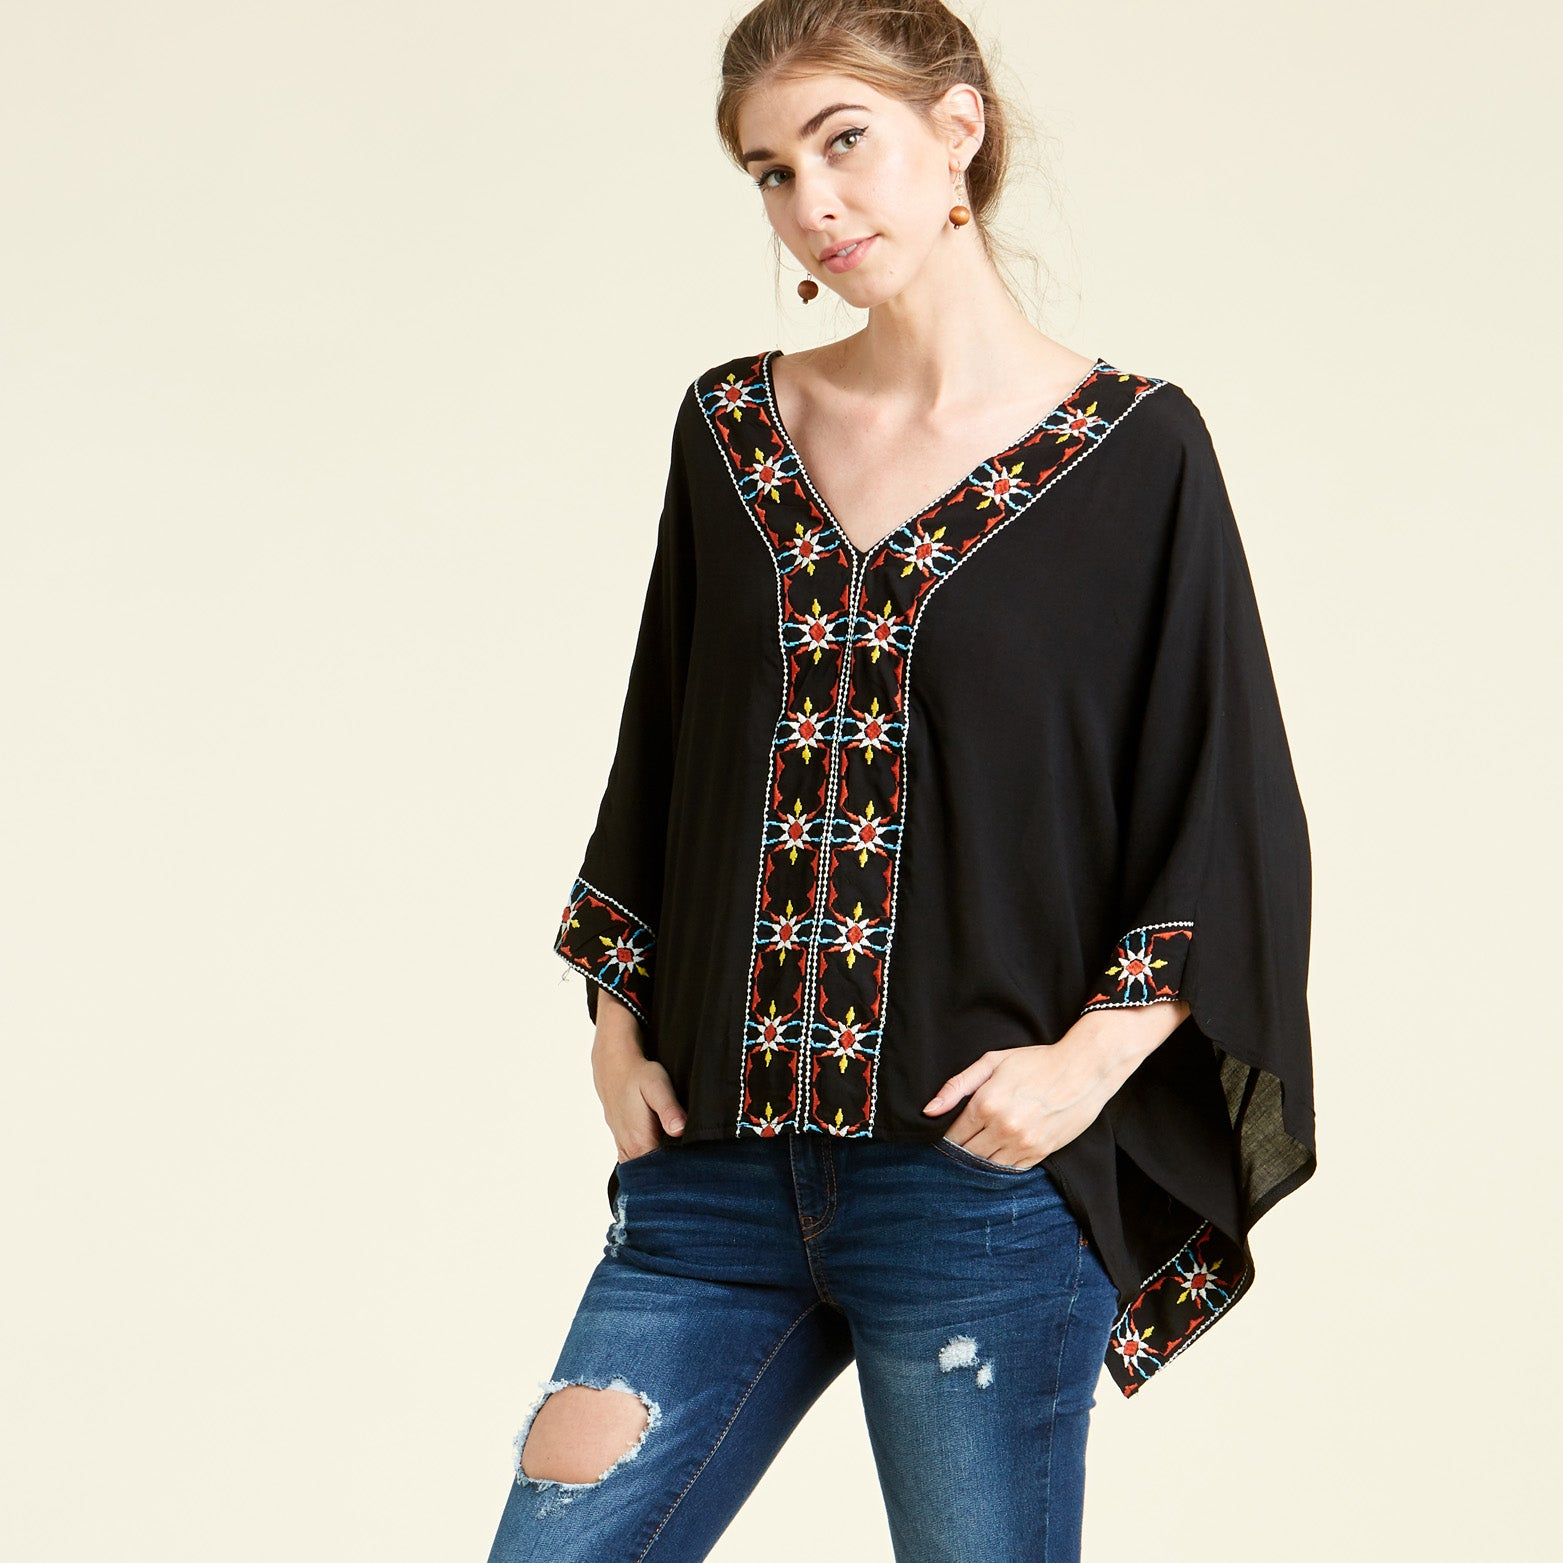 Evening Twinkle Embroidered Poncho